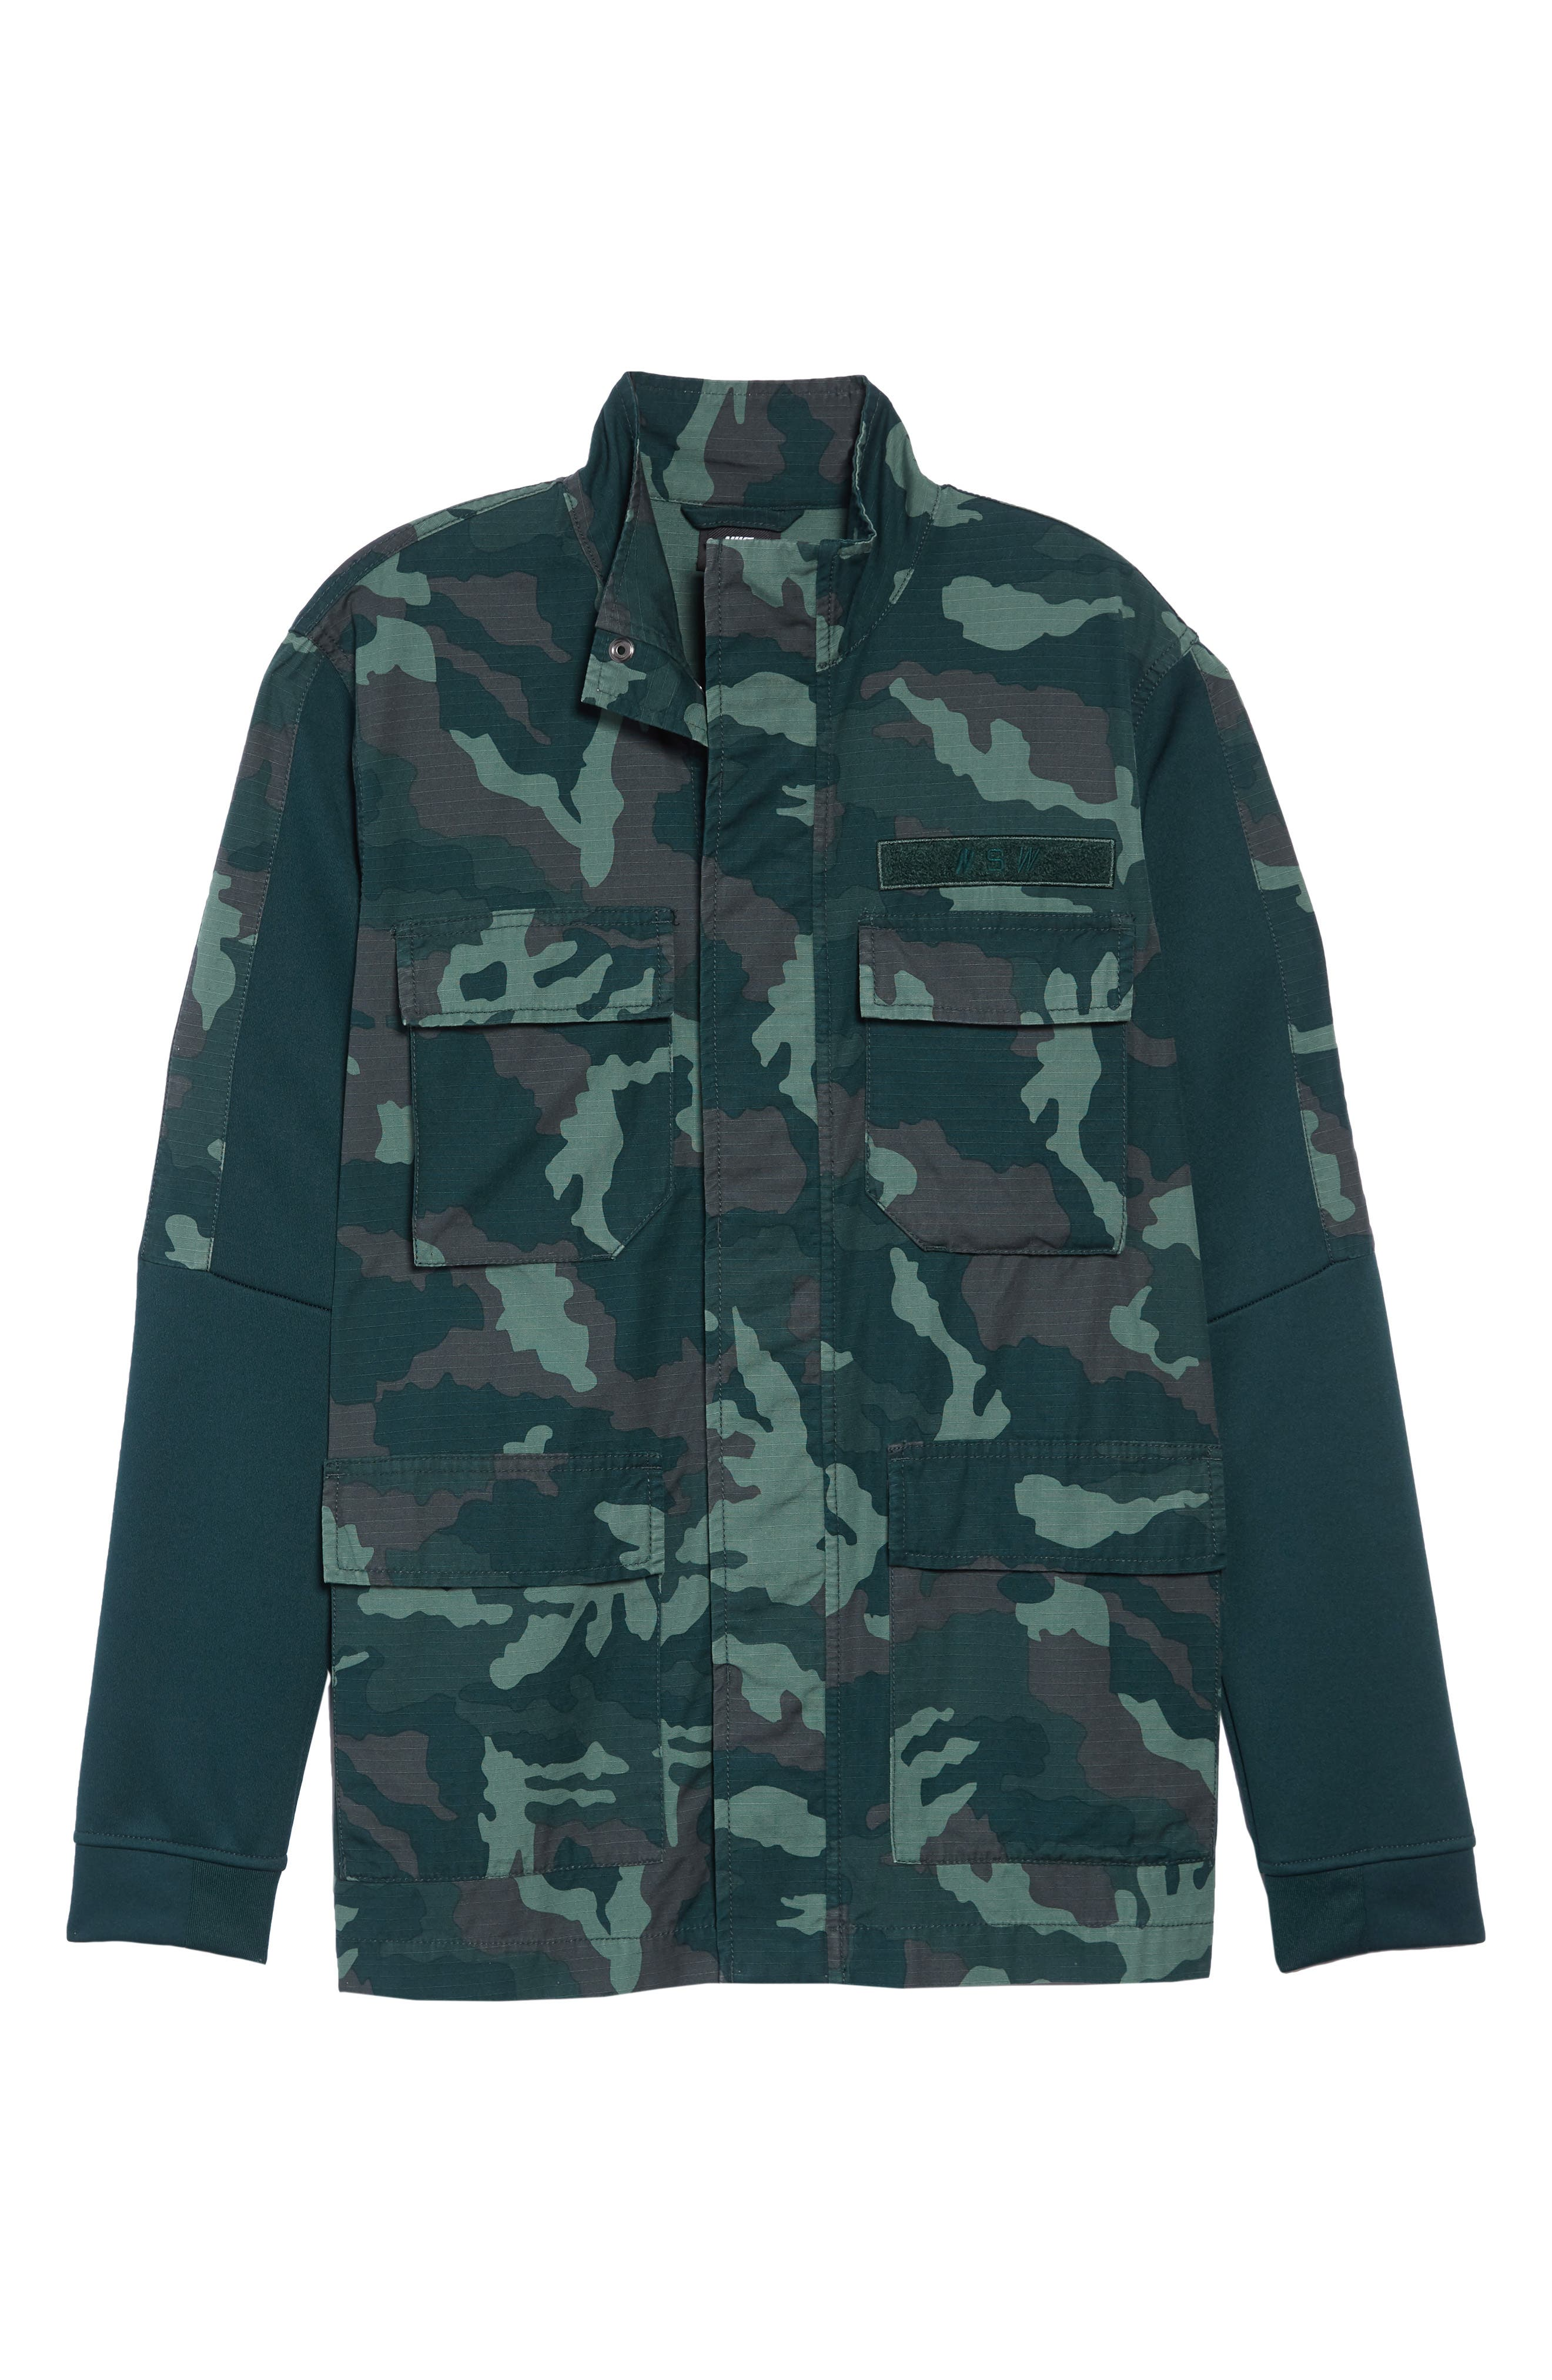 NSW Lightweight Camo Field Jacket,                             Alternate thumbnail 6, color,                             MIDNIGHT SPRUCE